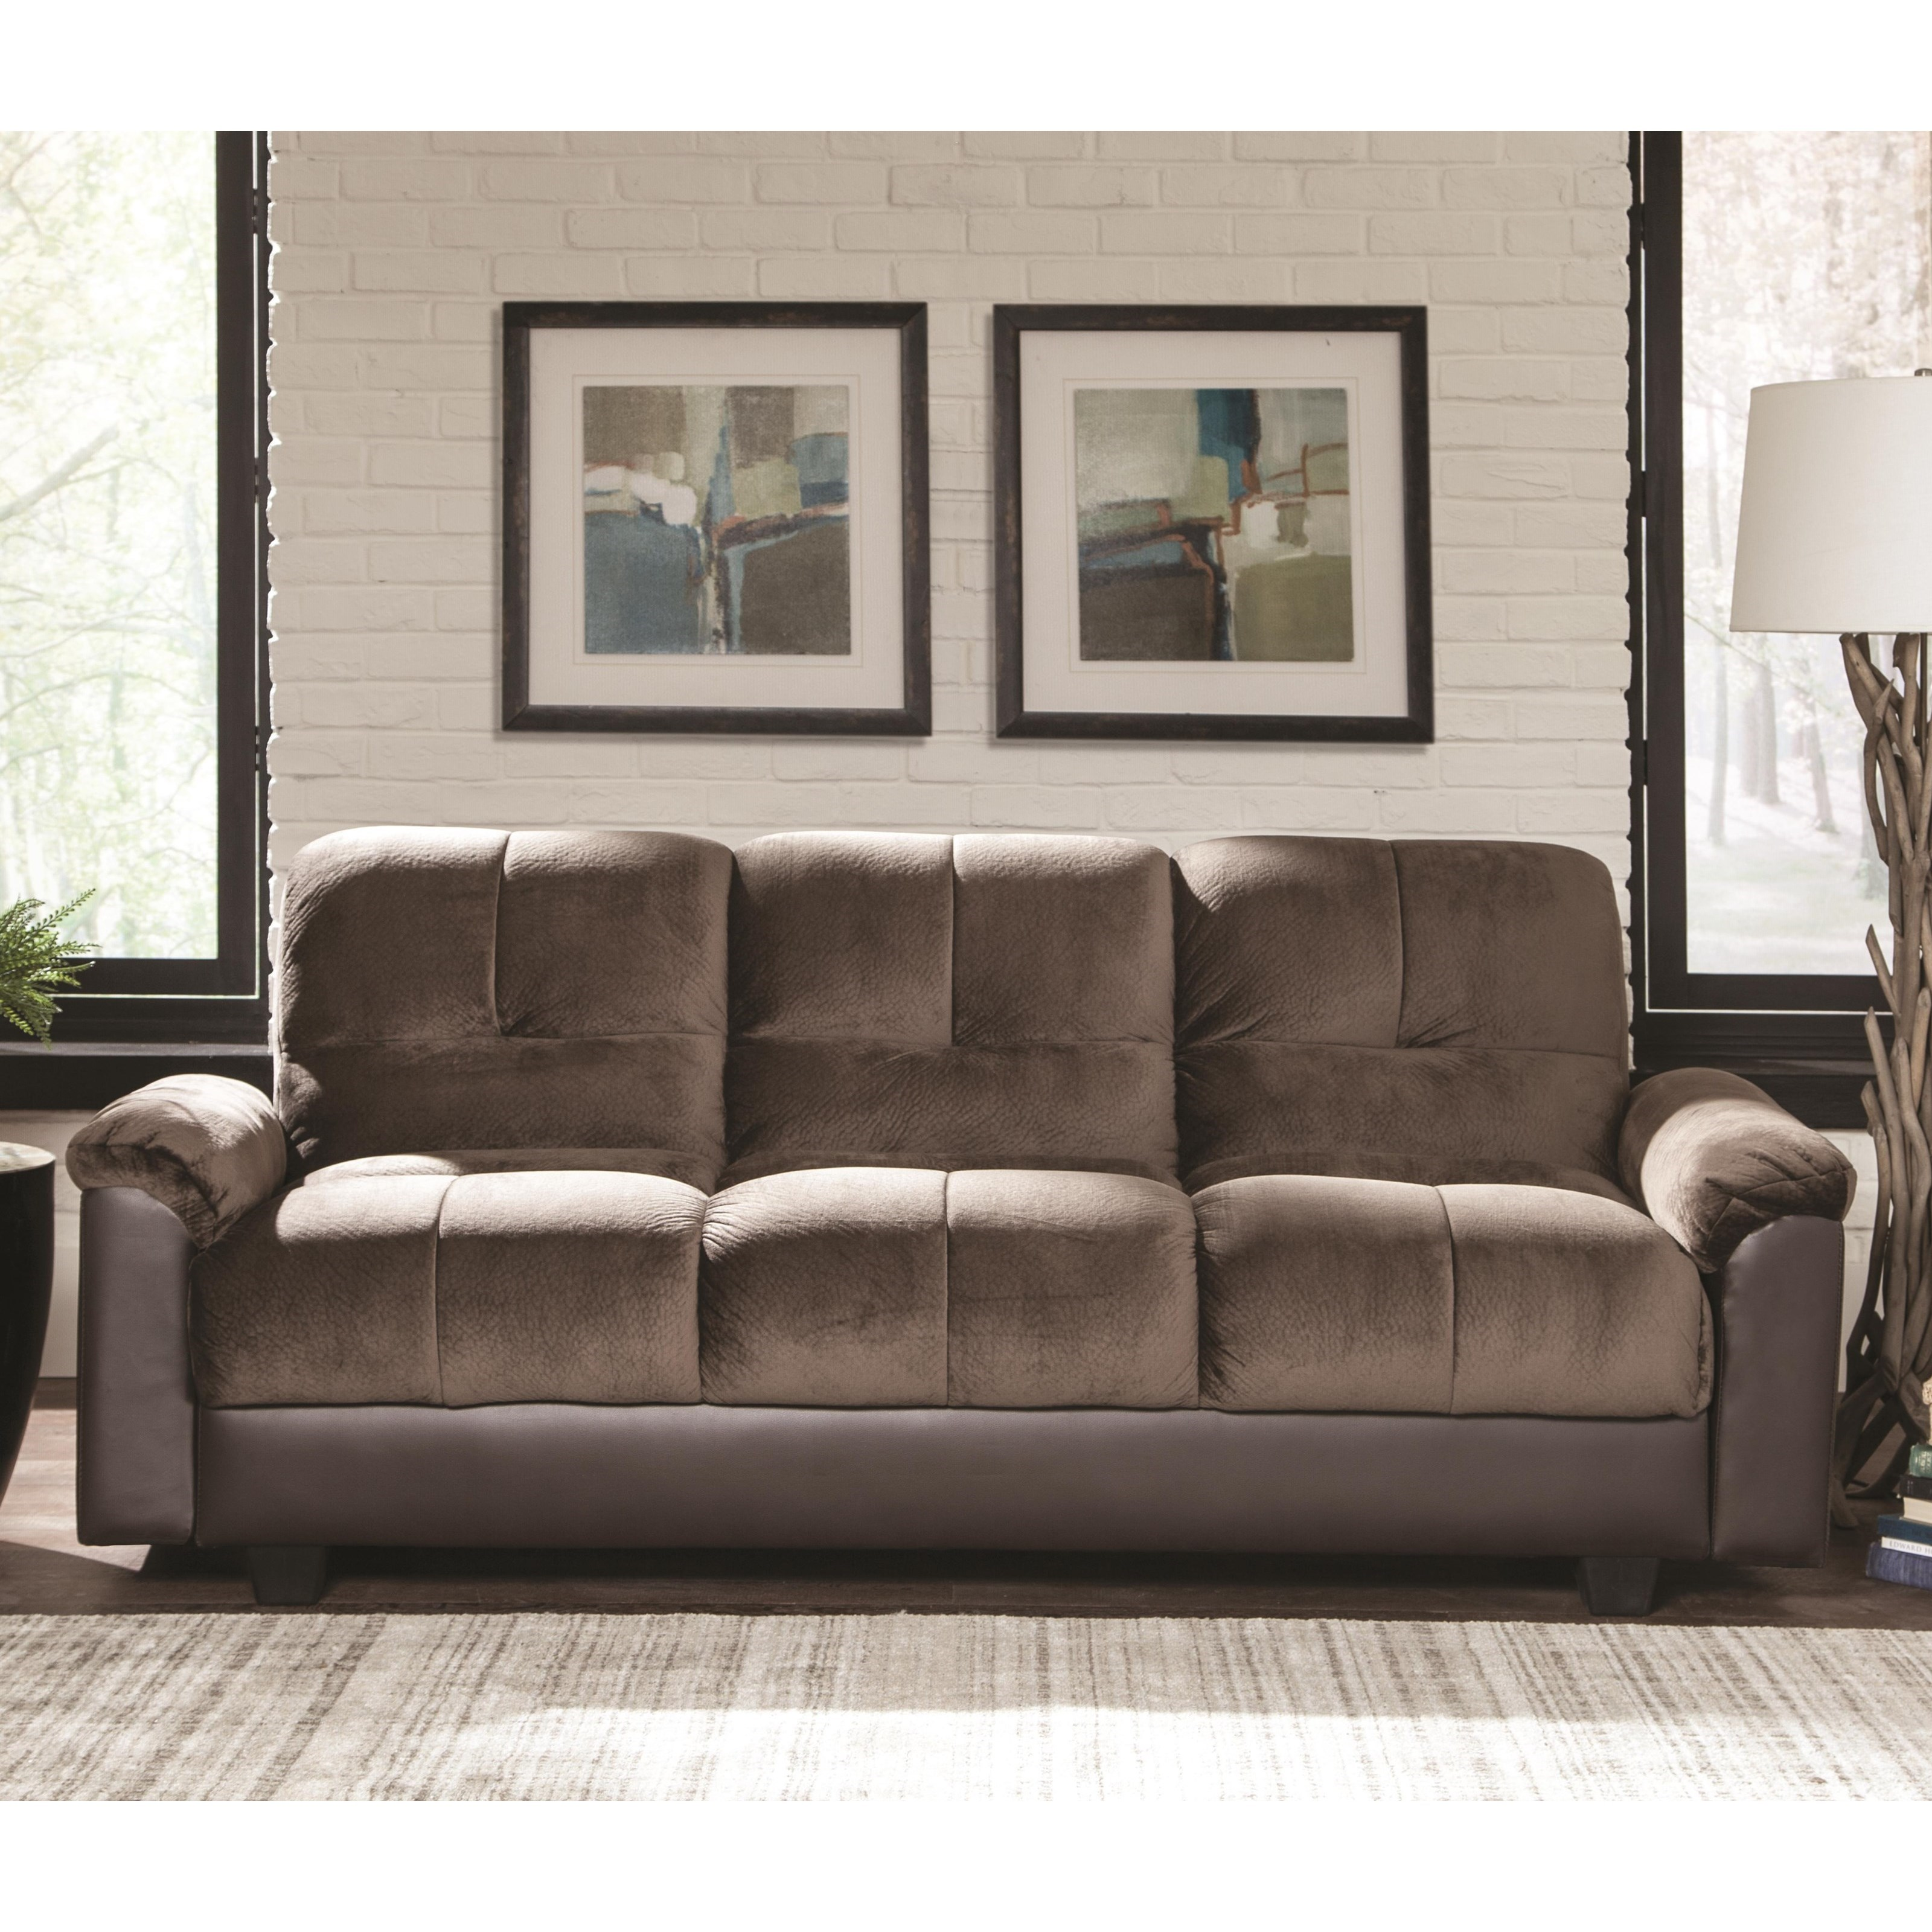 Sofa Bed For Sale In Quezon City: Fine Furniture Sofa Beds And Futons 360007 Two-Tone Sofa